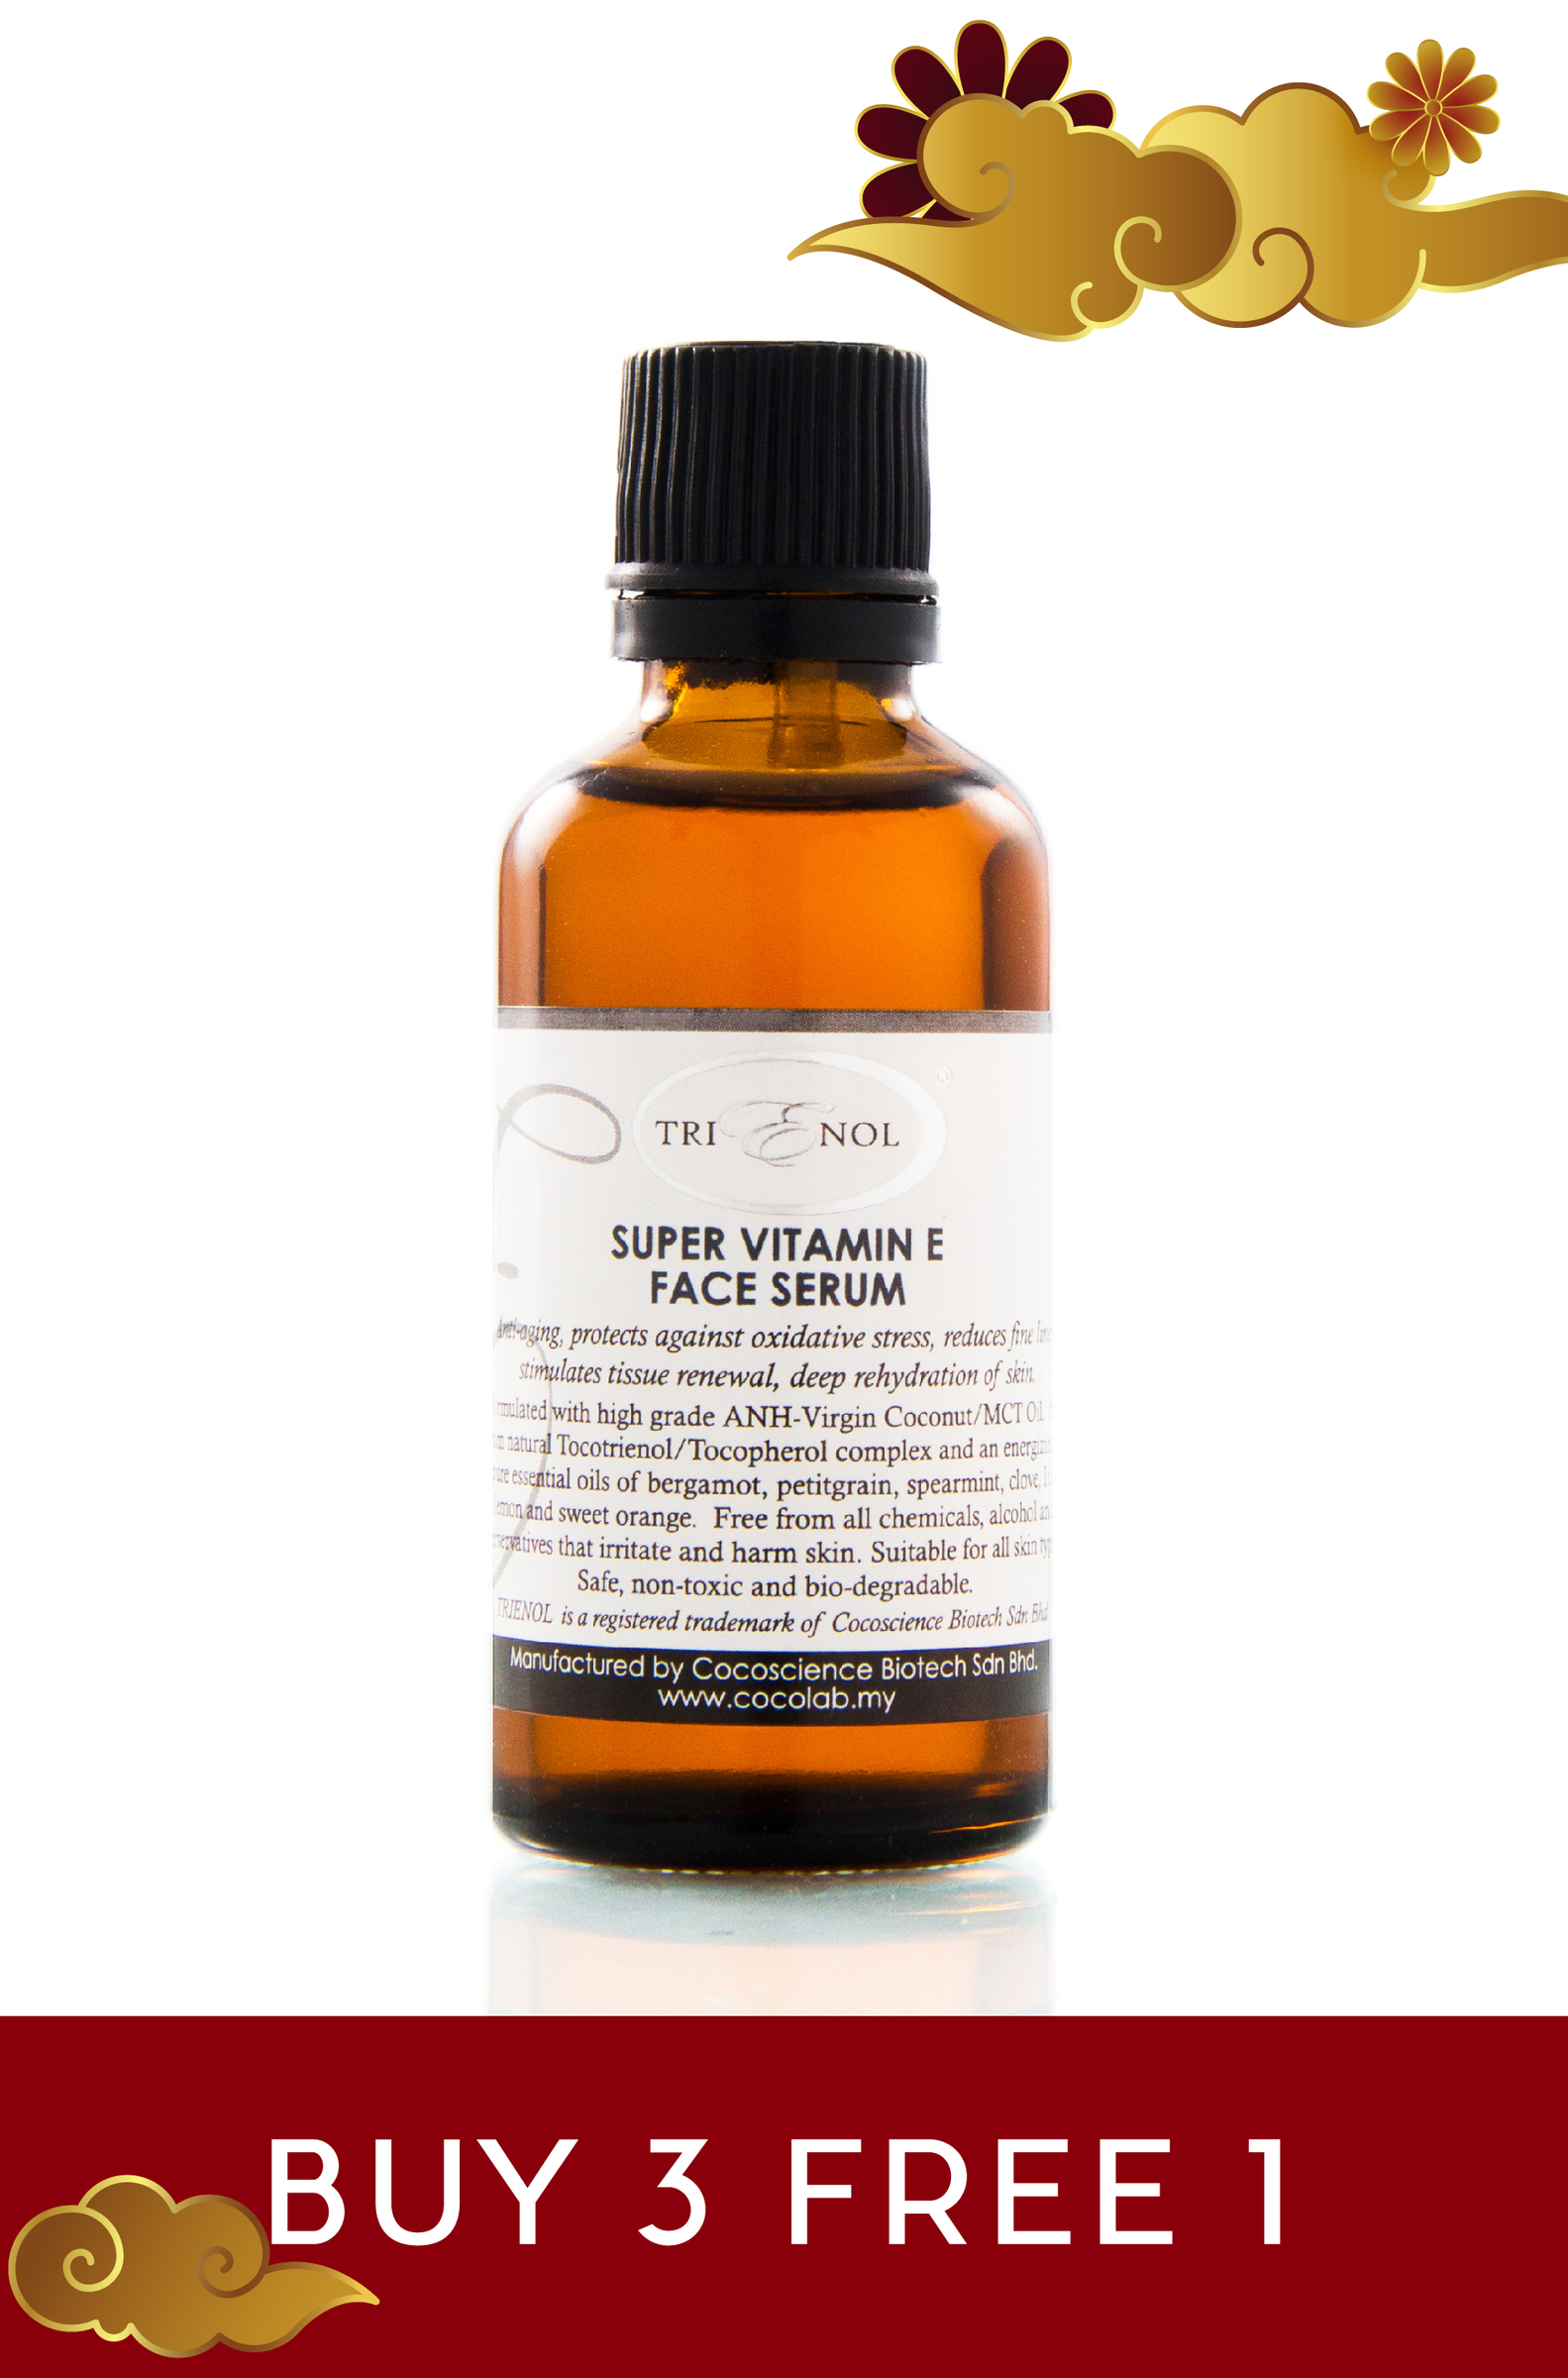 FACE SERUM - BUY 3 FREE 1 (PRODUCT PLACEMENT).jpg